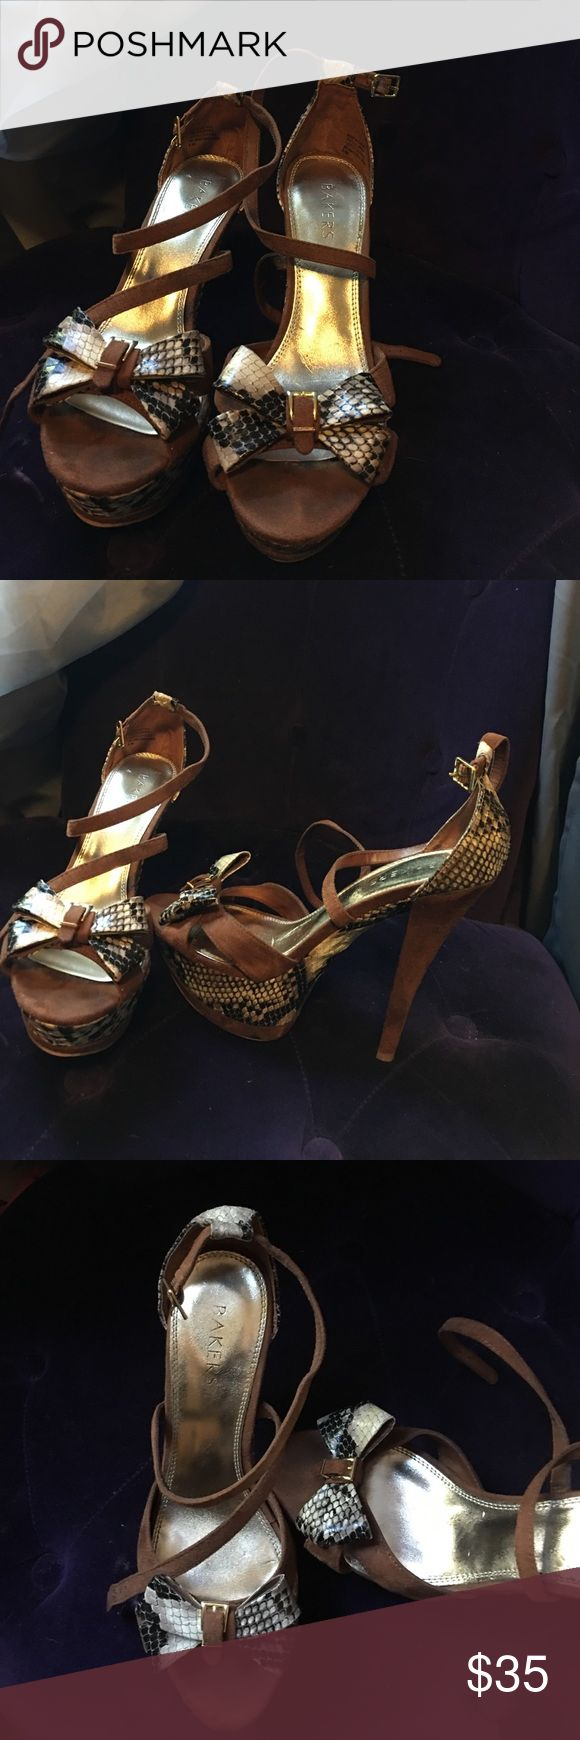 Brown suede snakeskin heels Brown suede snakeskin heels with a bow with the gold buckle Bakers Shoes Heels